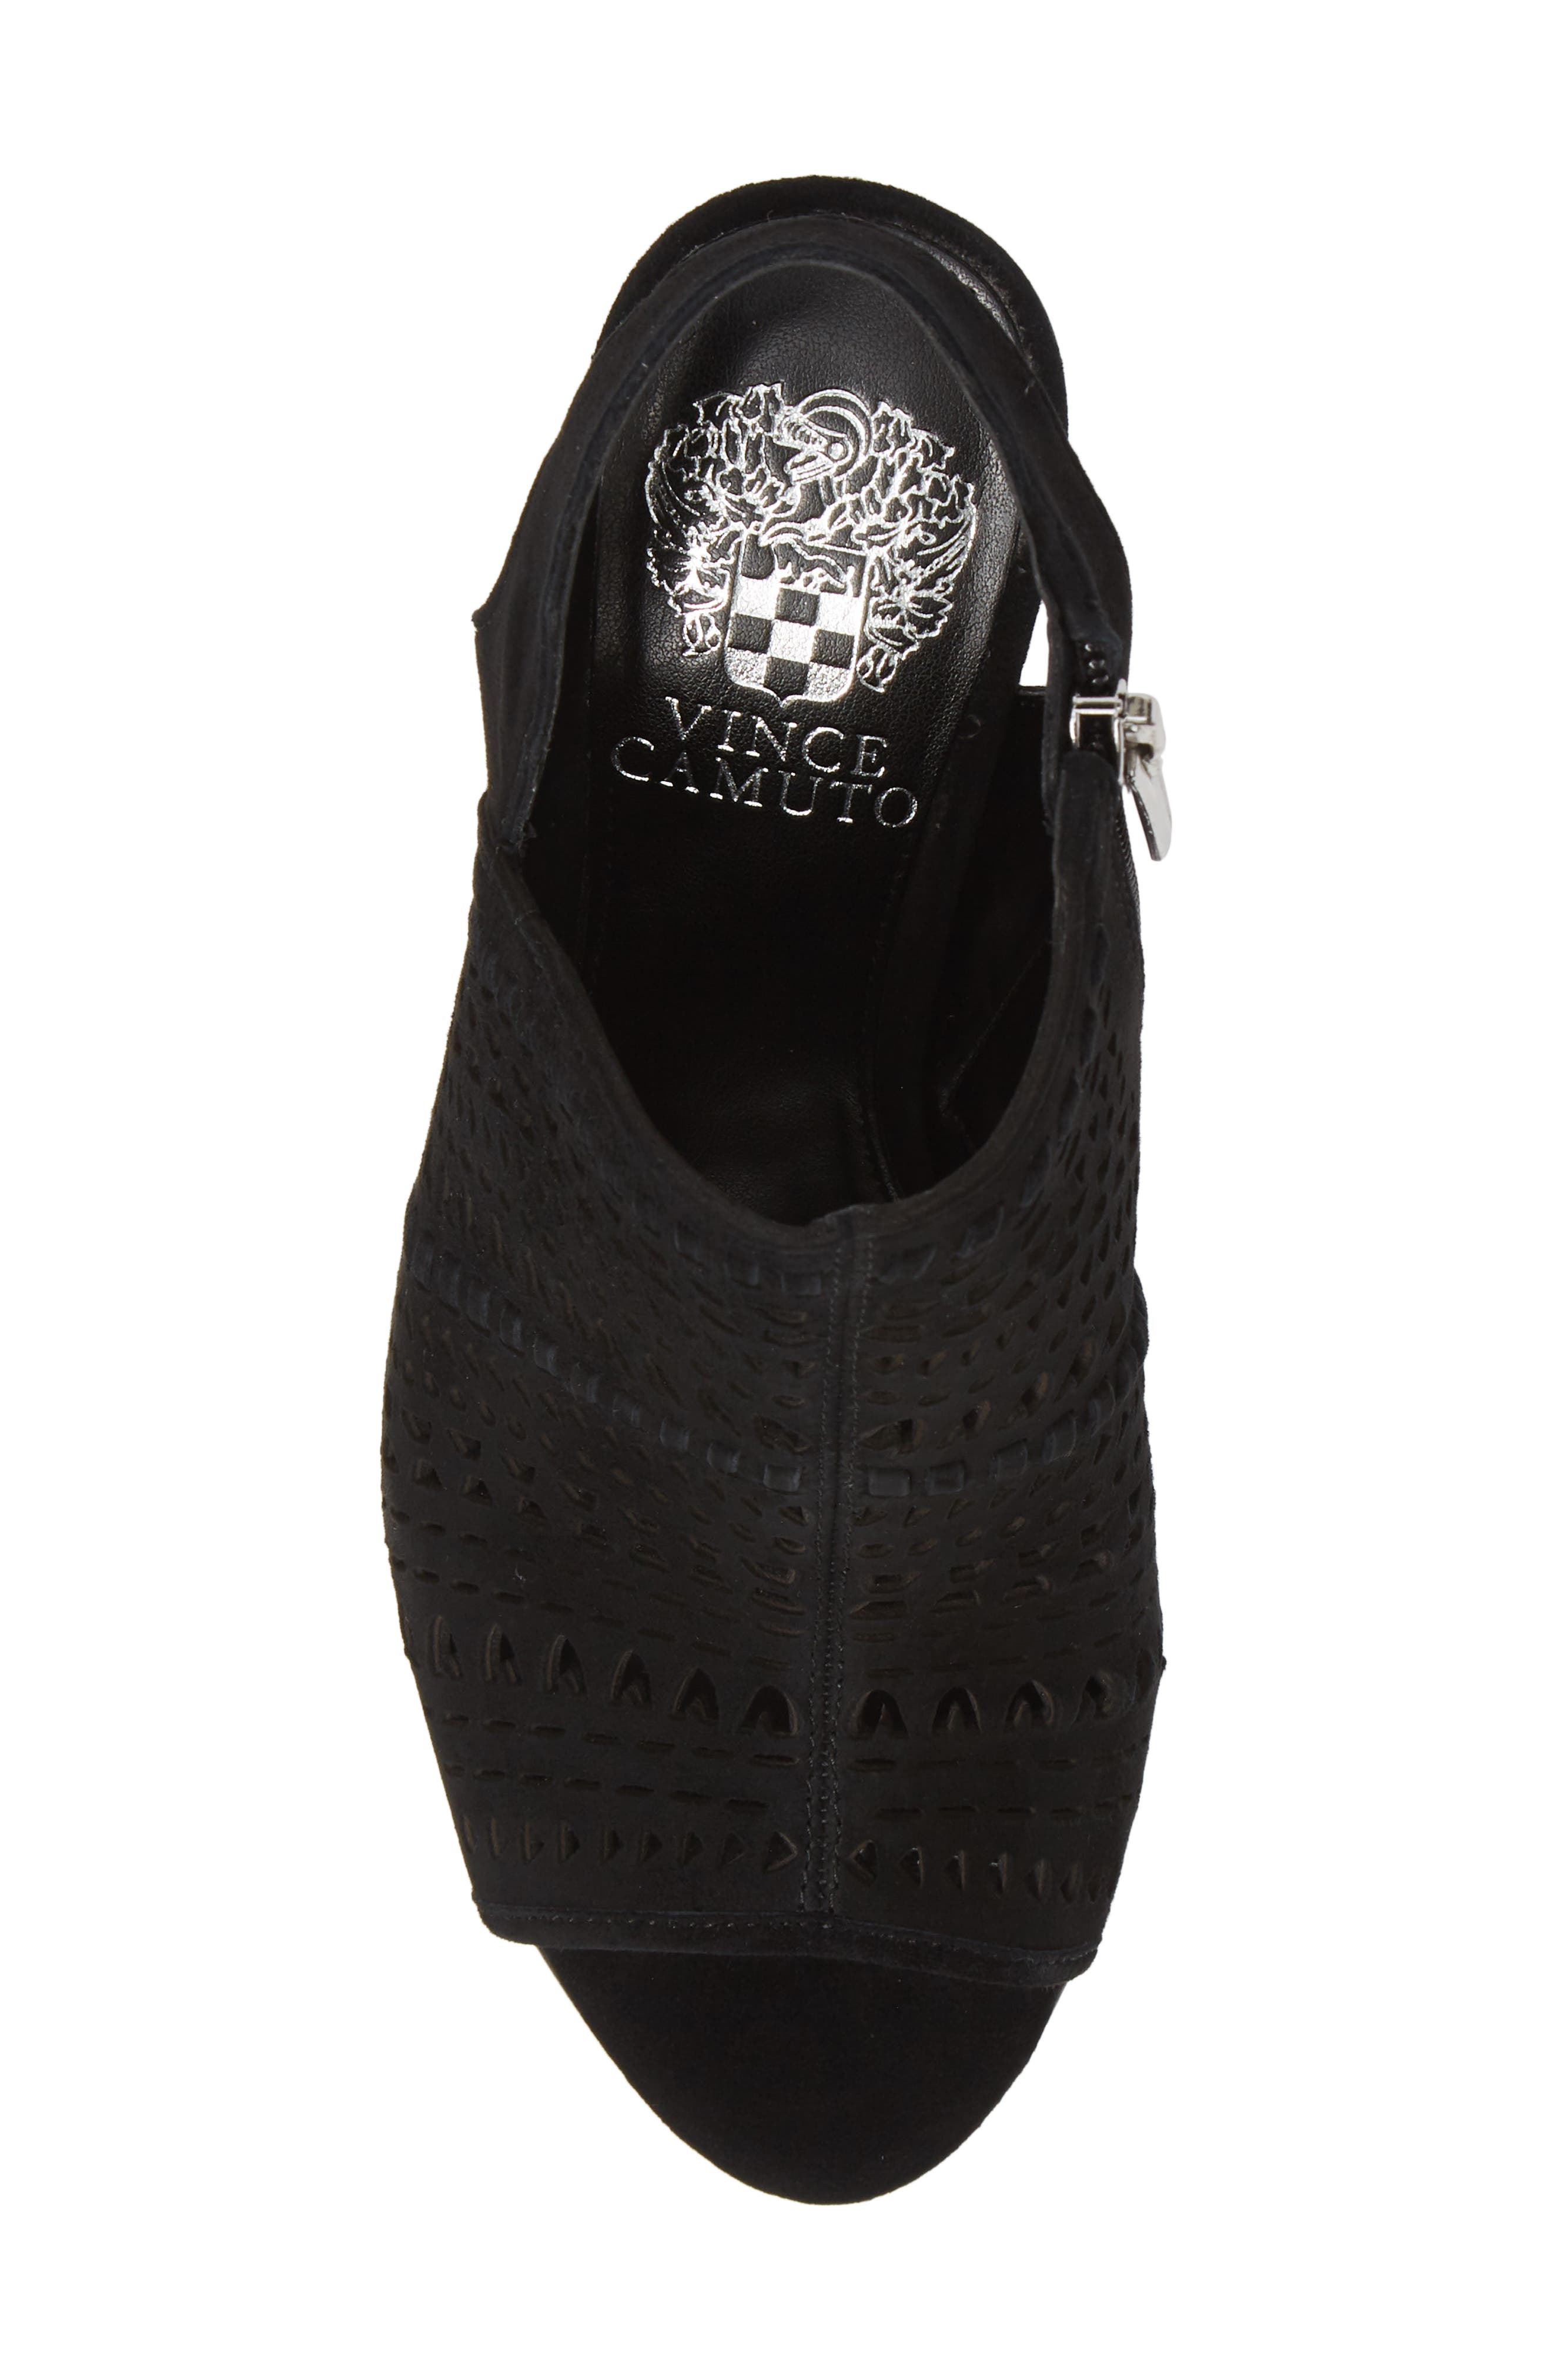 VINCE CAMUTO, Derechie Perforated Shield Sandal, Alternate thumbnail 5, color, BLACK SUEDE